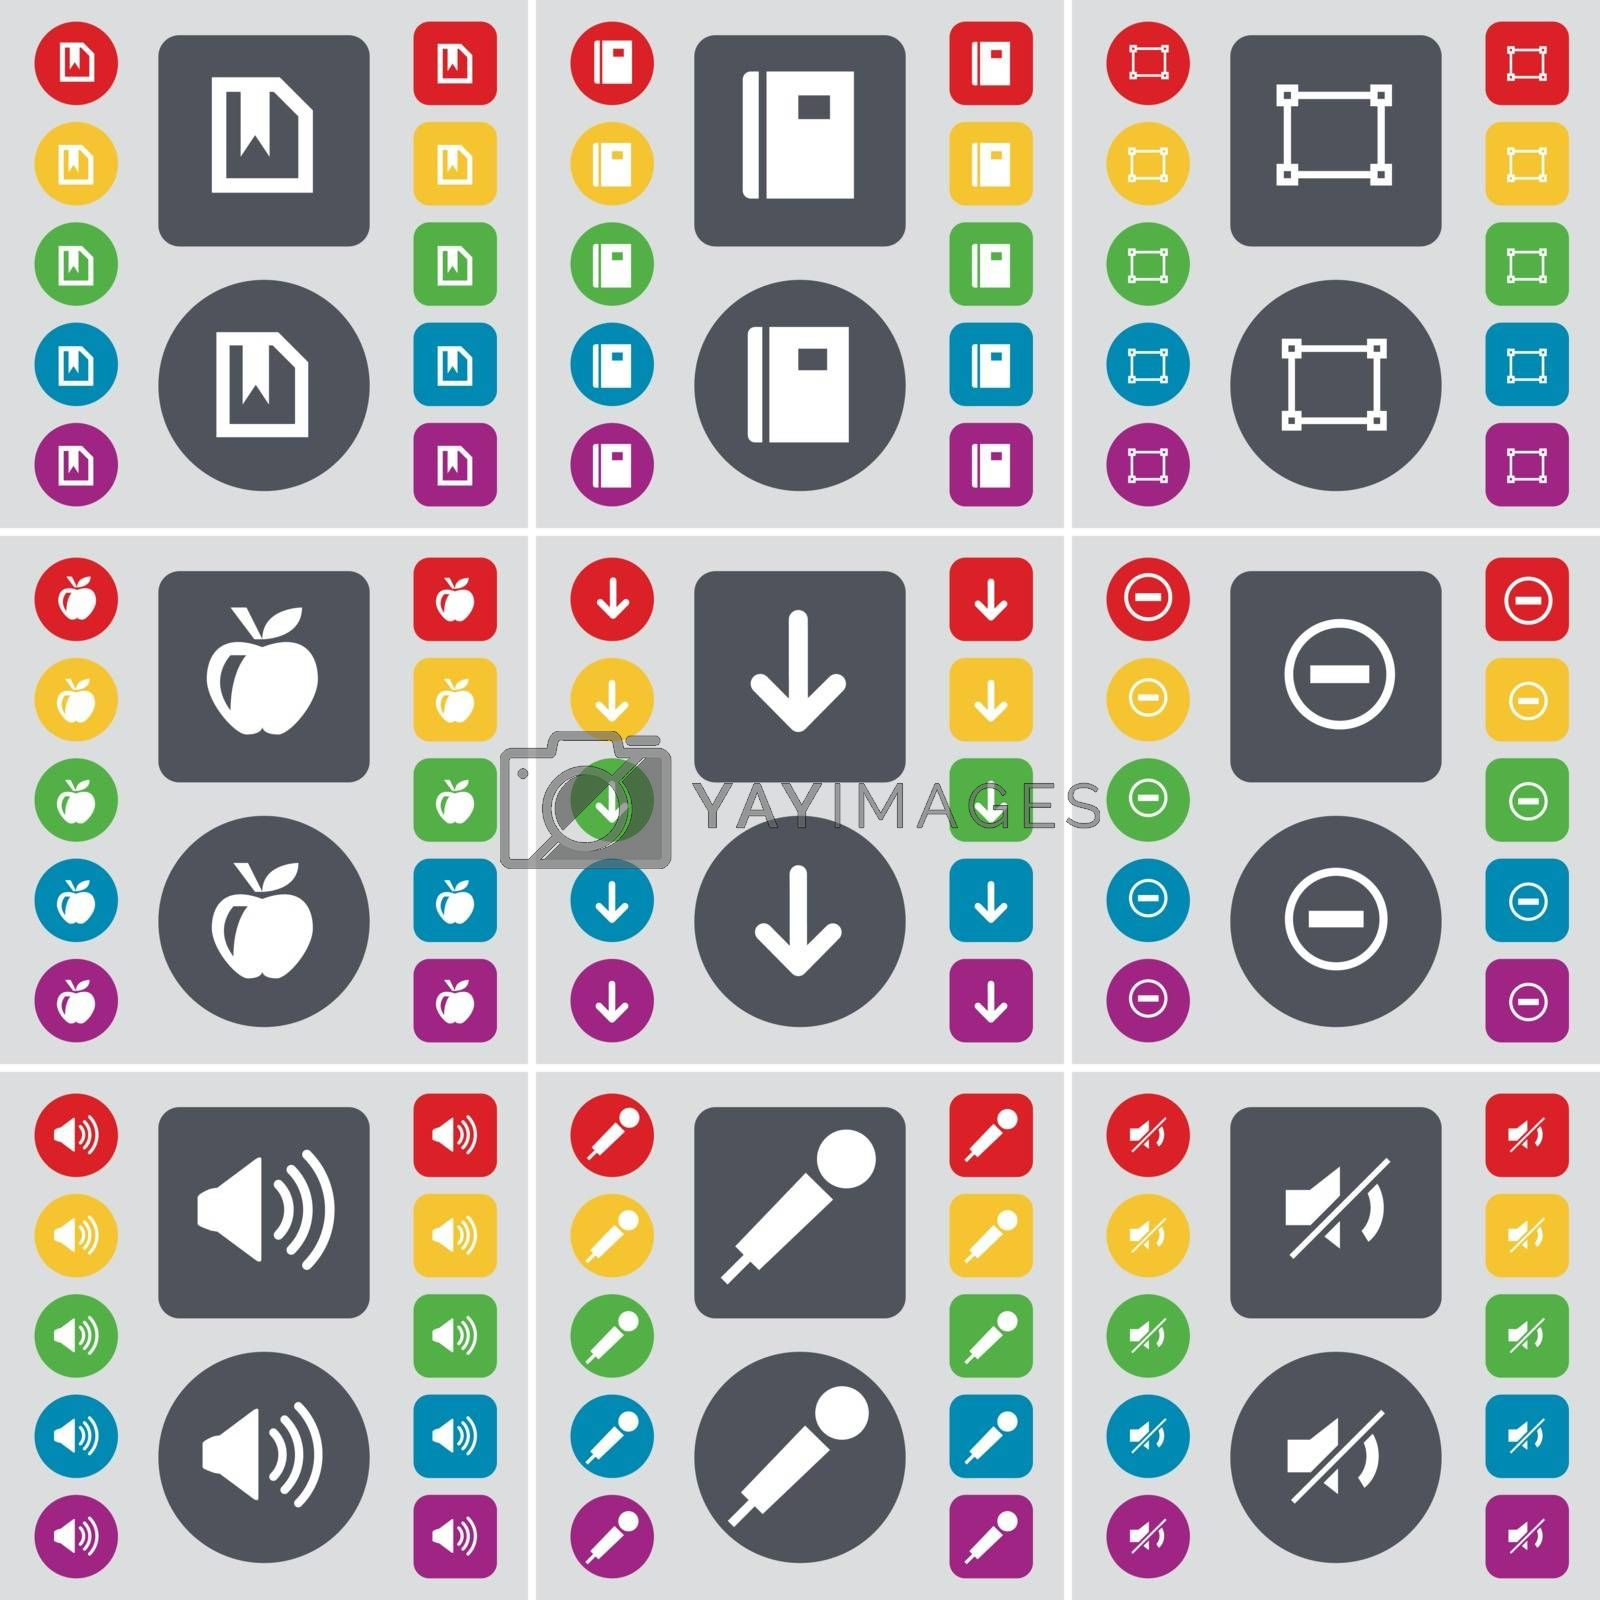 Royalty free image of File, Notebook, Frame, Apple, Arrow down, Minus, Sound, Microphone, Mute icon symbol. A large set of flat, colored buttons for your design. Vector by serhii_lohvyniuk